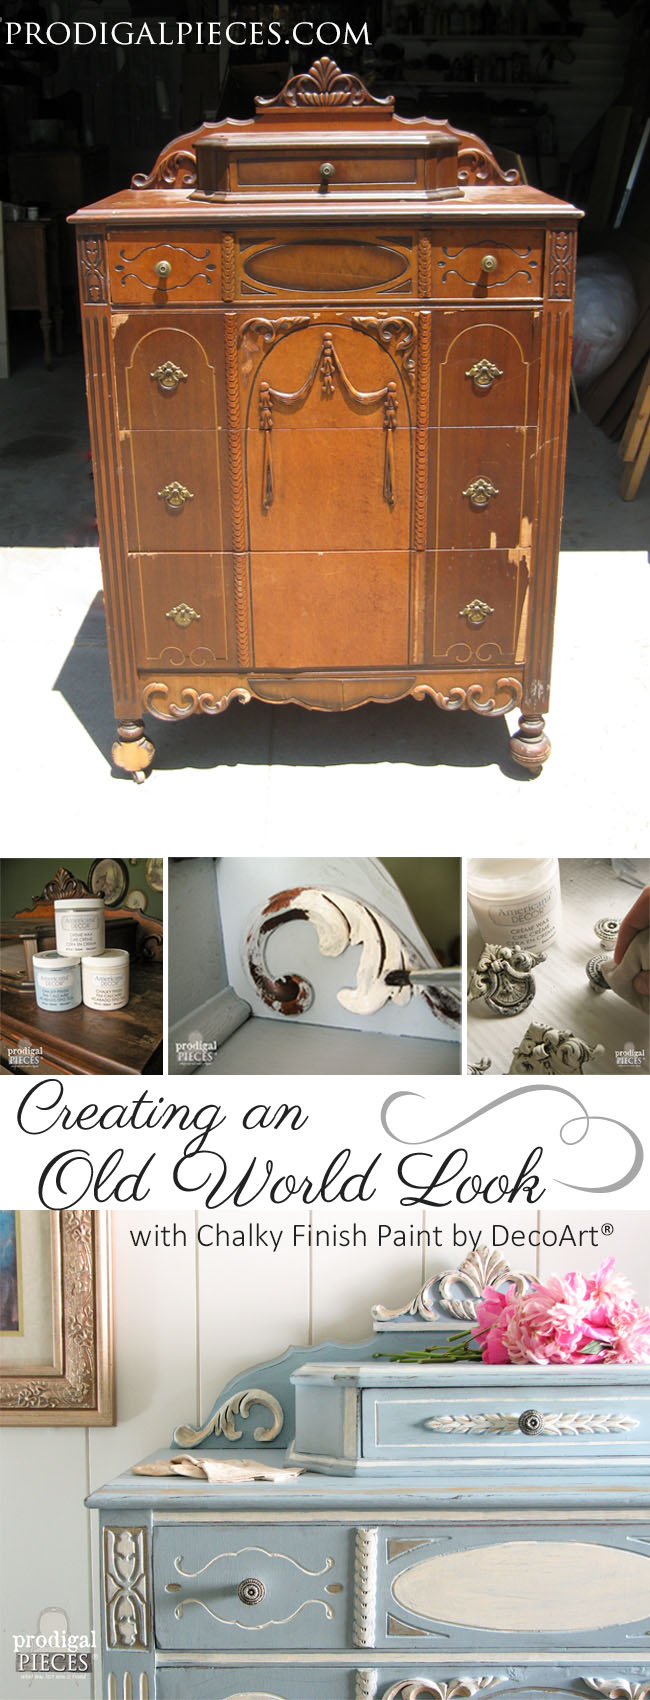 Creating an Old Work Look with Paint by Prodigal Pieces | www.prodigalpieces.com